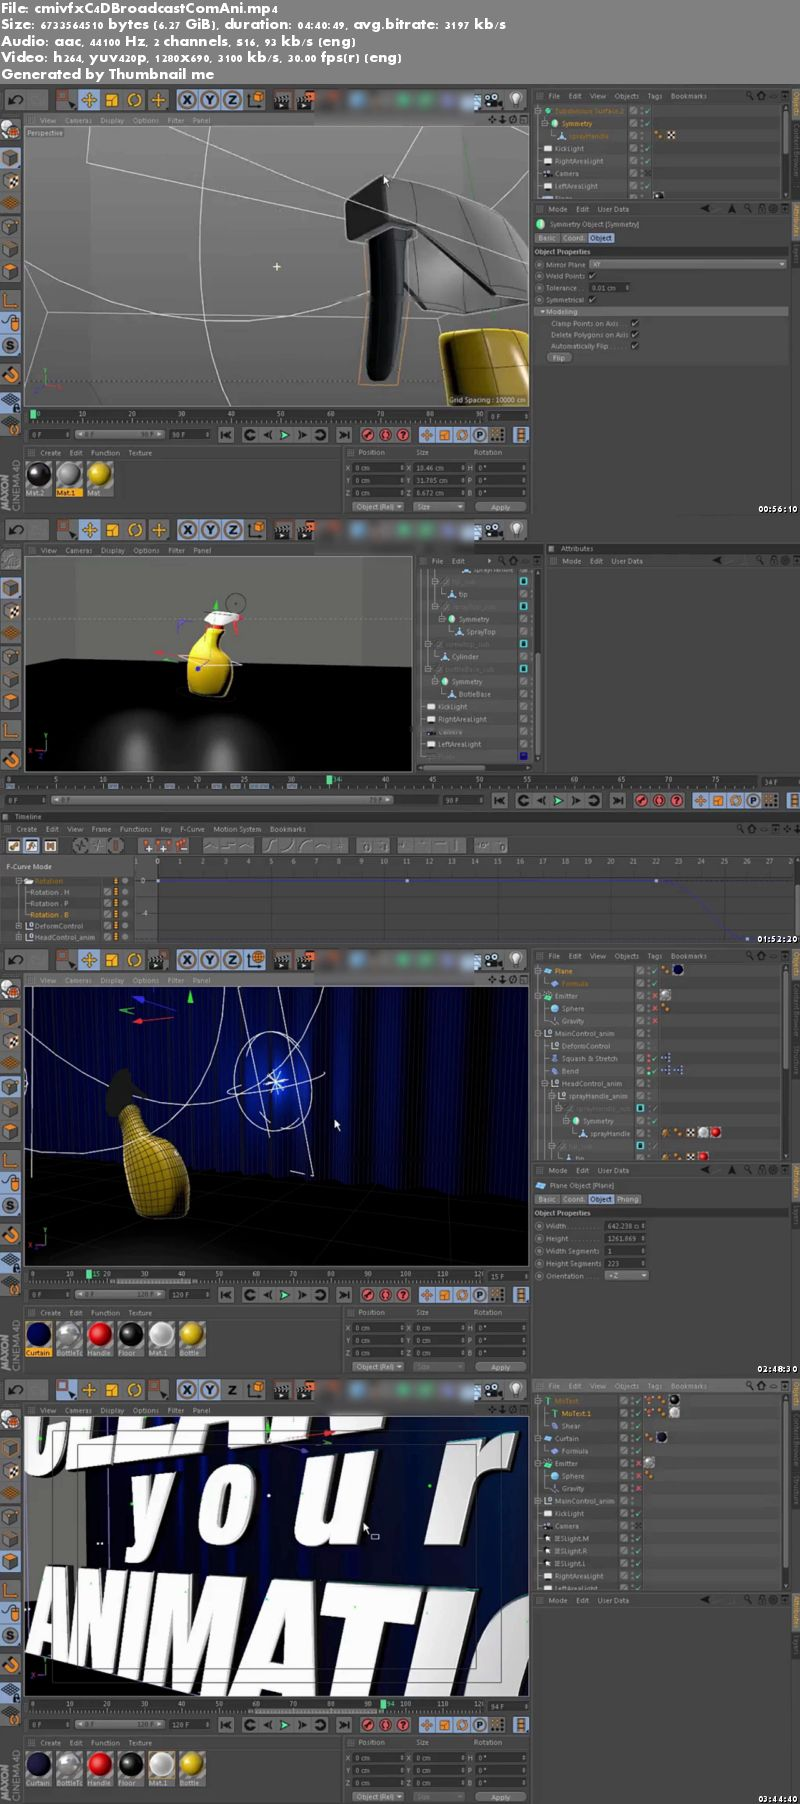 Cinema 4D Broadcast Commercial Animation